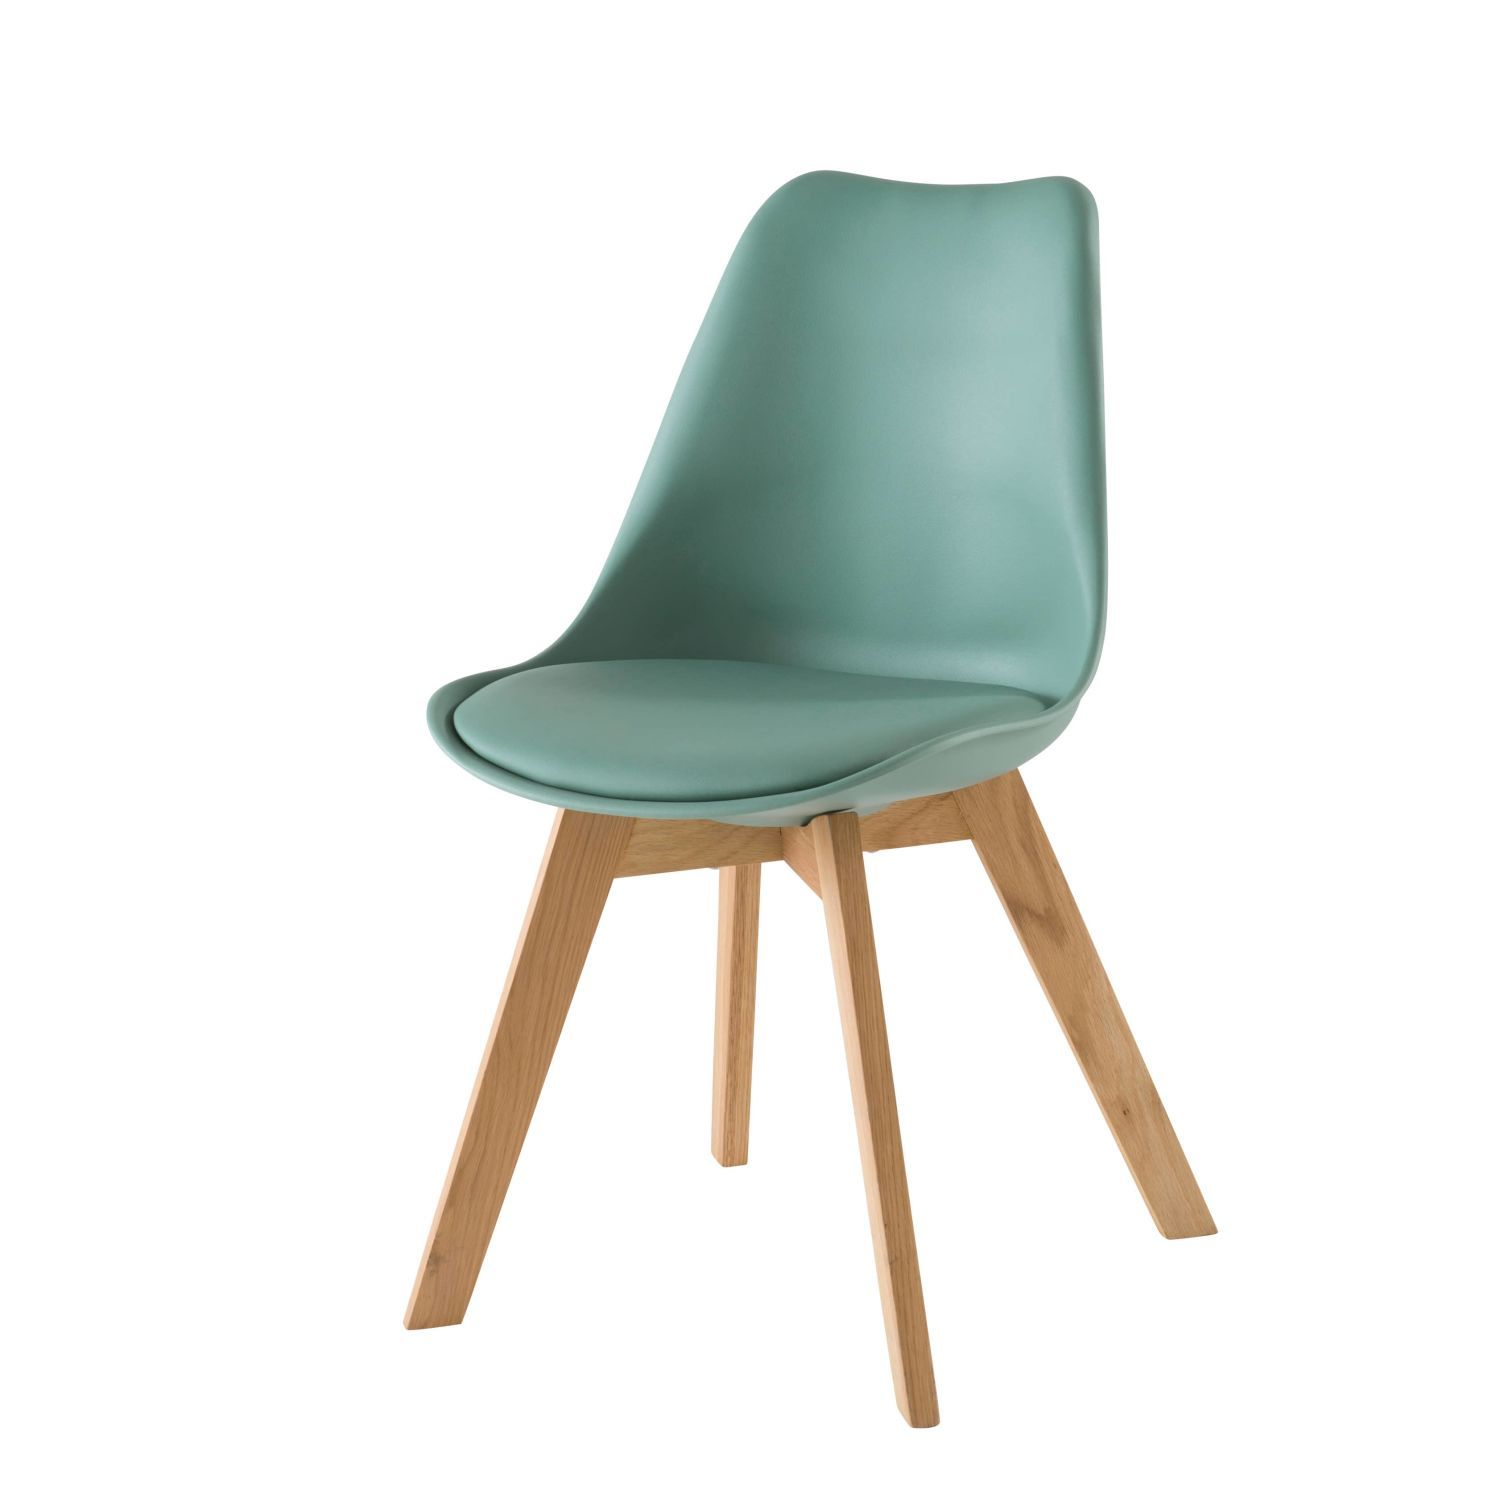 Aqua Scandinavian Style Chair With Solid Oak Maisons Du Monde Silla Escandinava Roble Macizo Silla Aguamarina